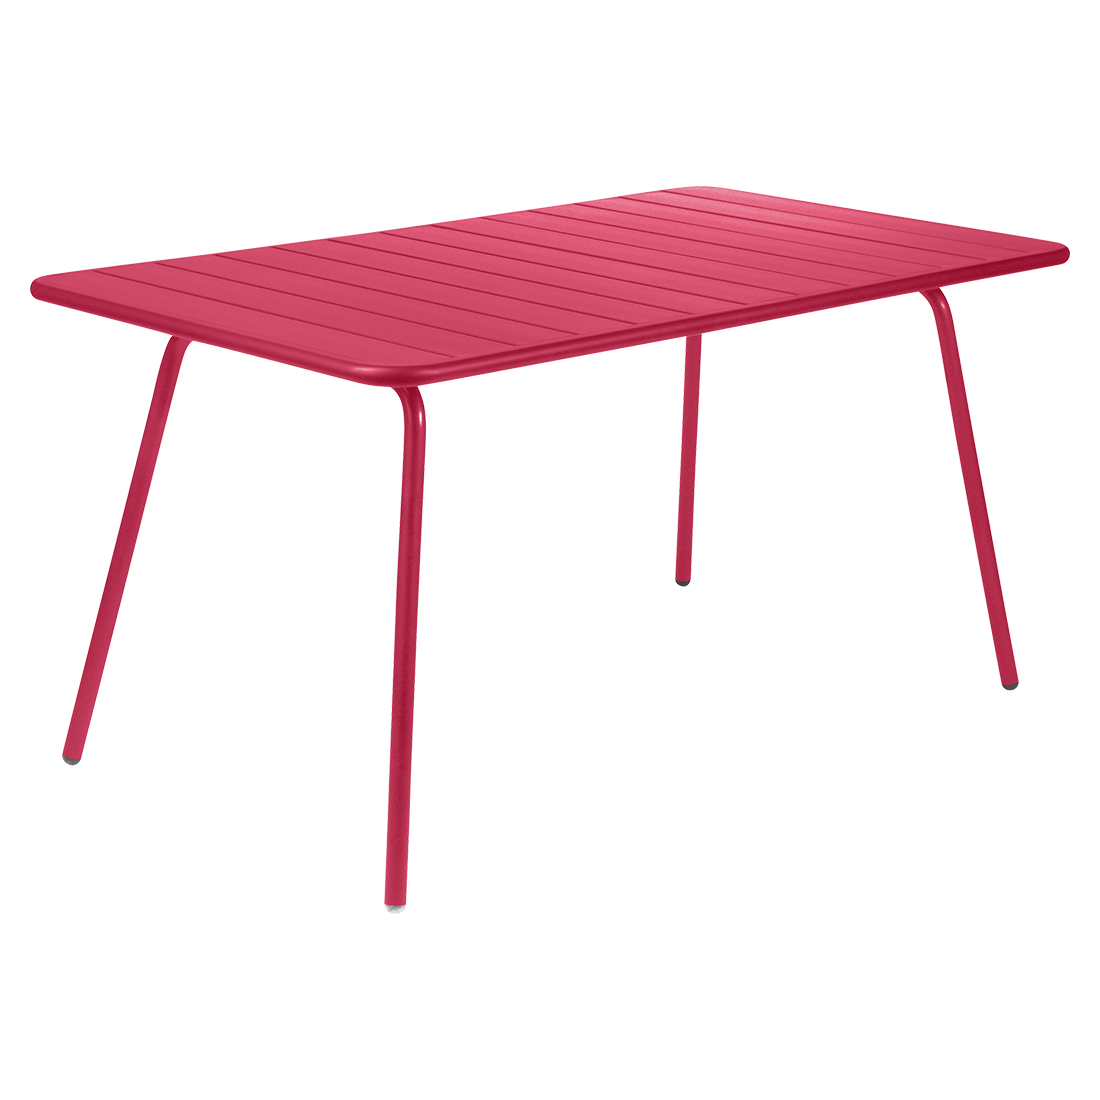 table de jardin, table metal, table fermob, table rose